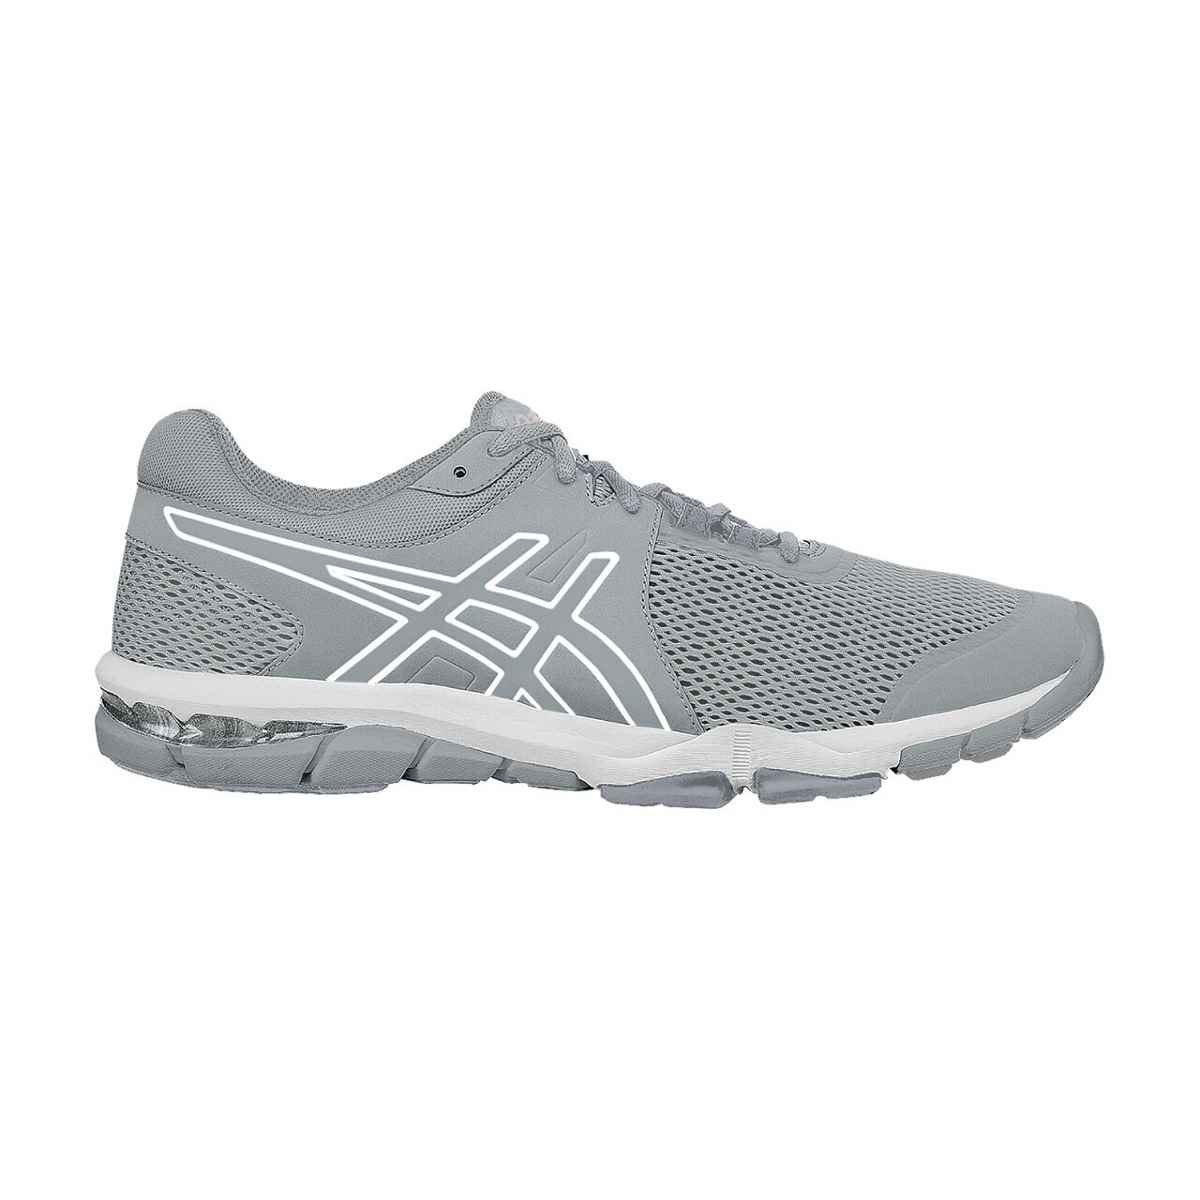 ASICS Women's Gel-Craze TR 4 Cross-Trainer Shoe B075FDHCPV 6 B(M) US|Mid Grey/Mid Grey/White